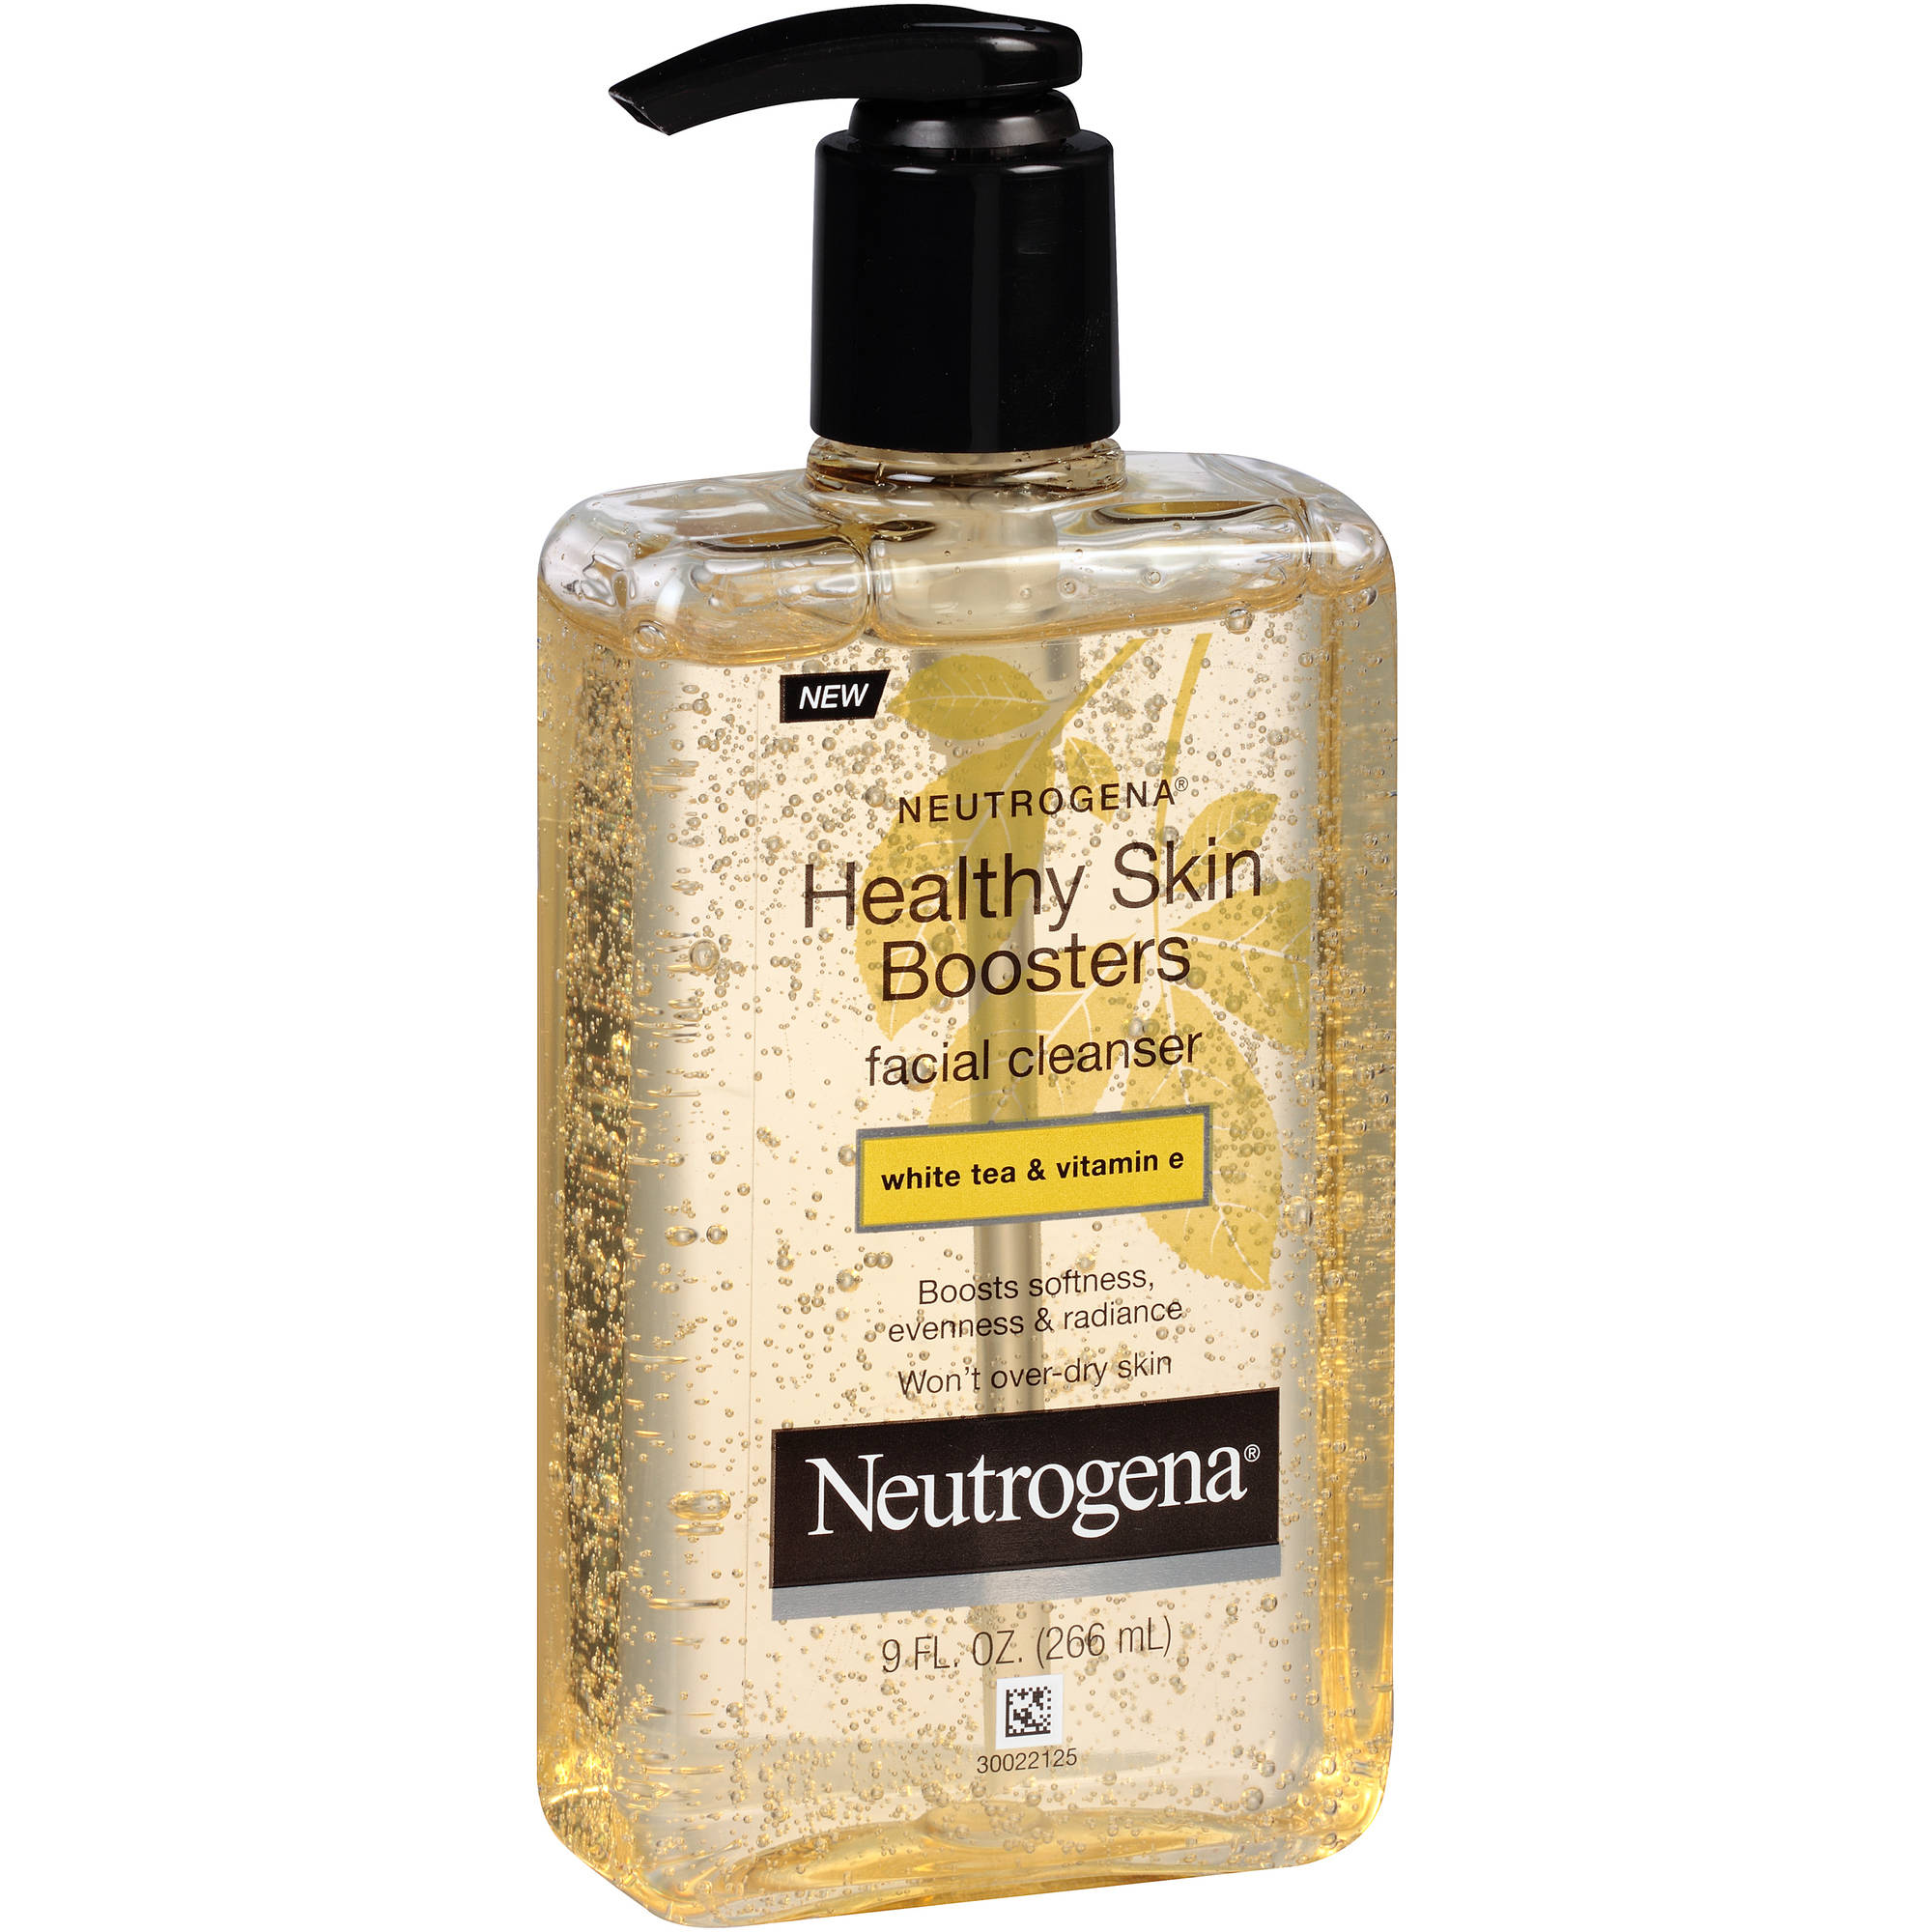 Neutrogena Healthy Skin Boosters Facial Cleanser, 9 fl oz